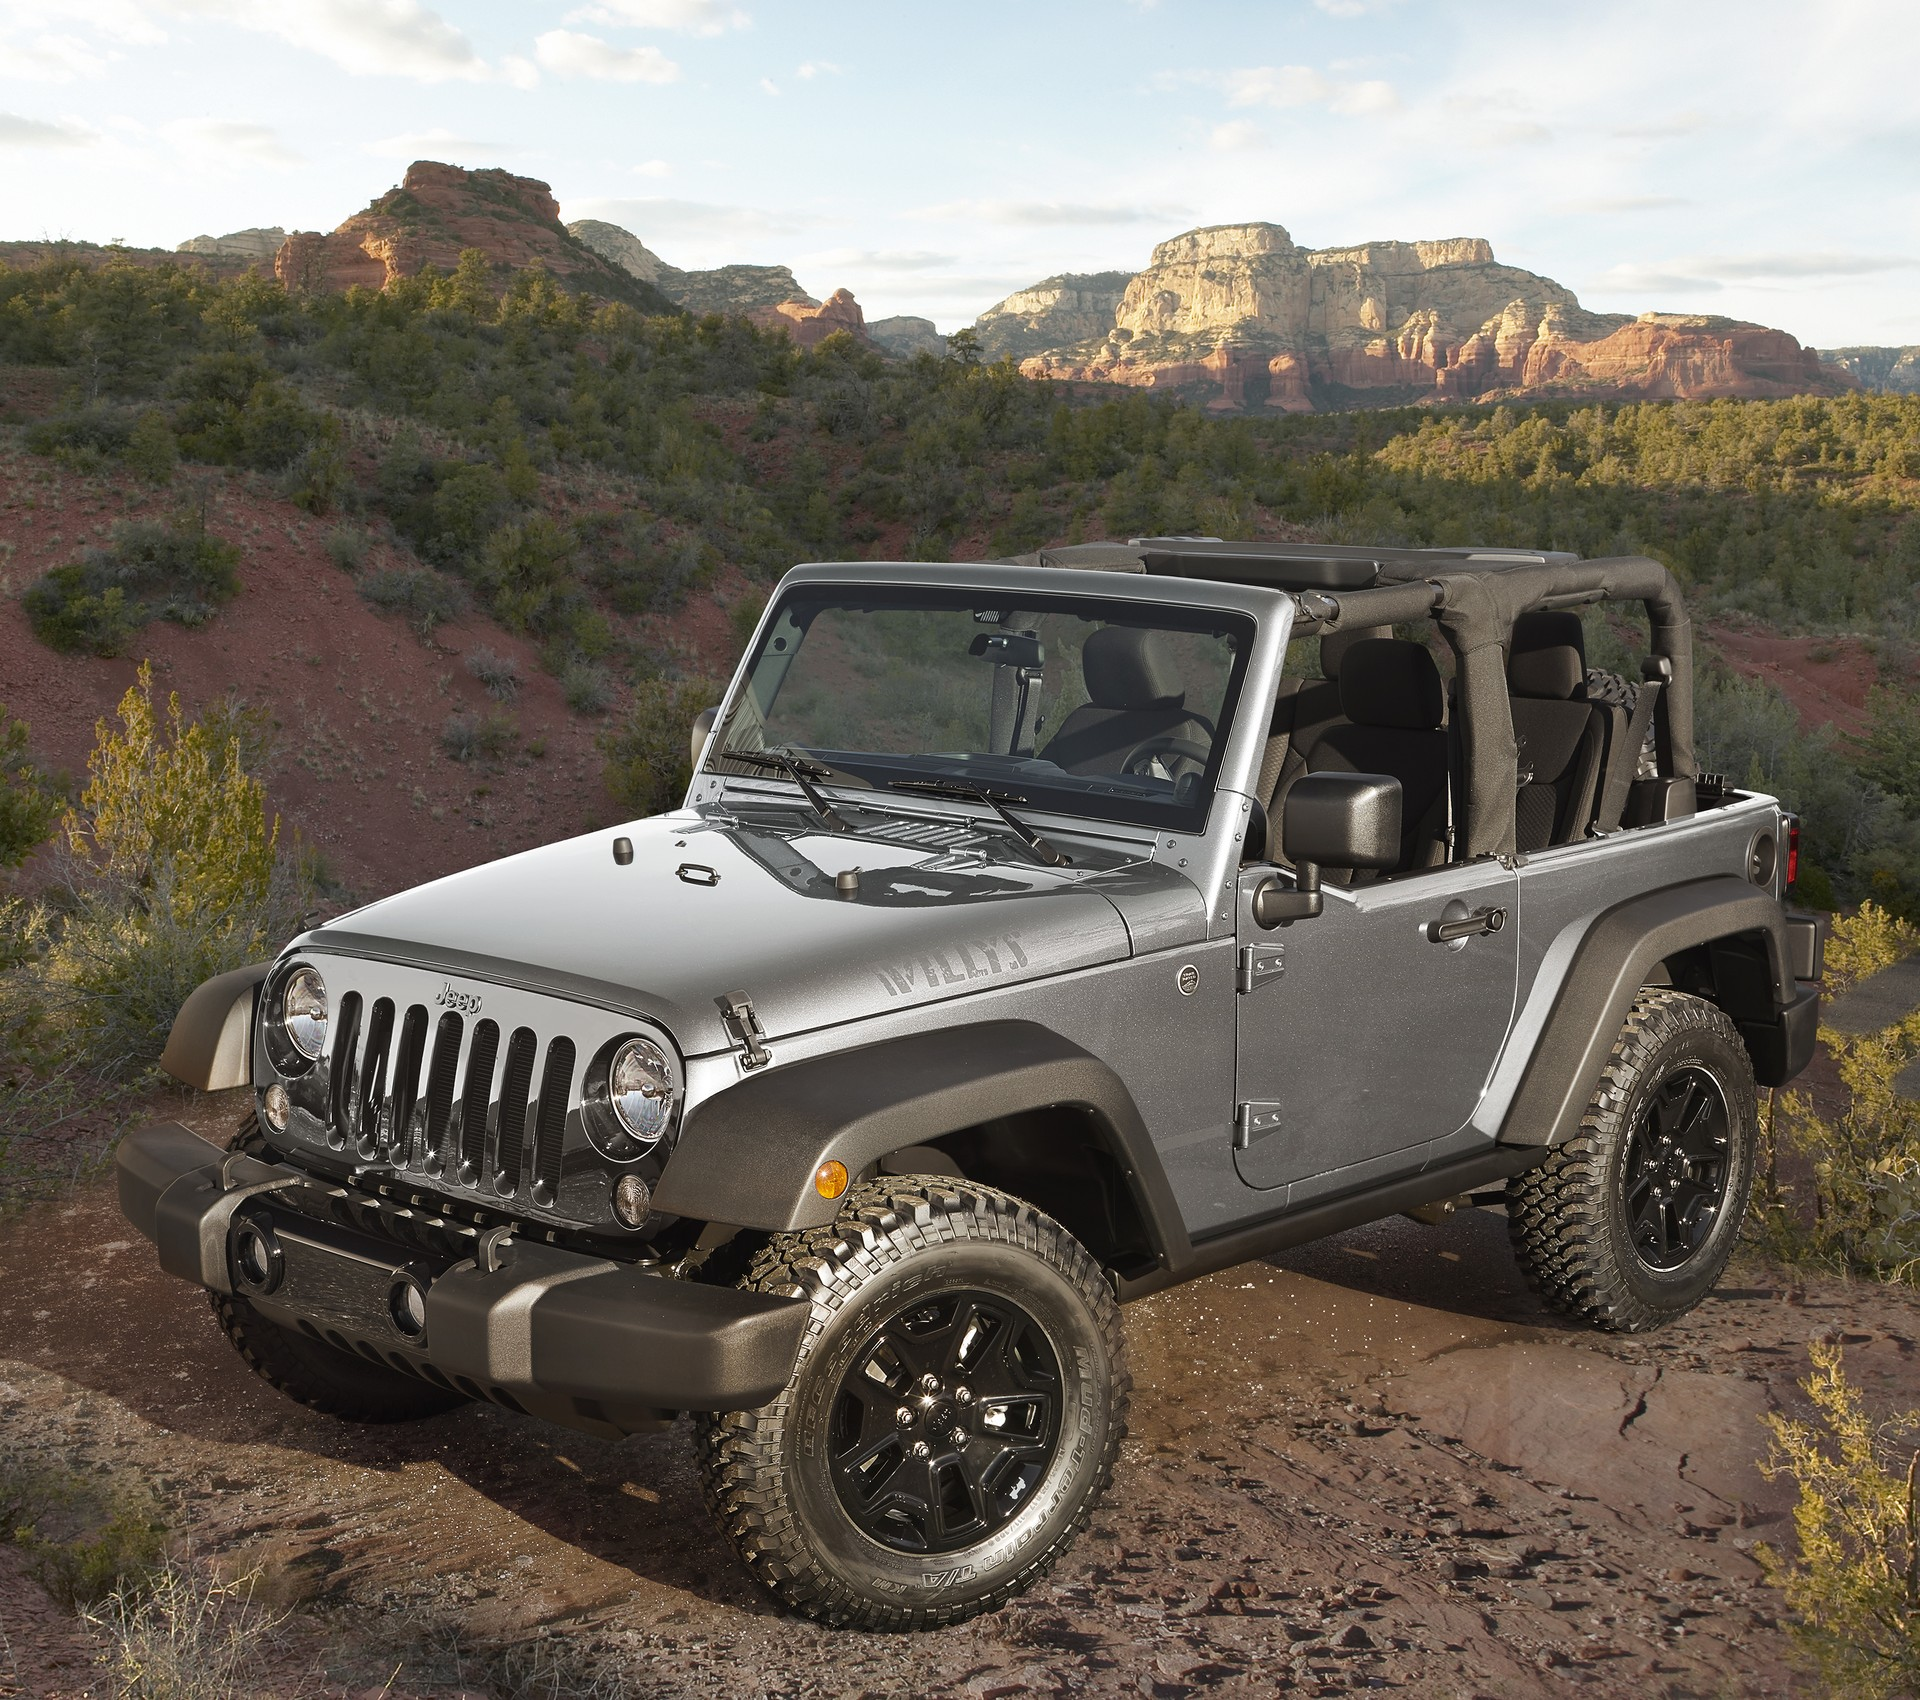 2015 Jeep Wrangler Review, Ratings, Specs, Prices, And